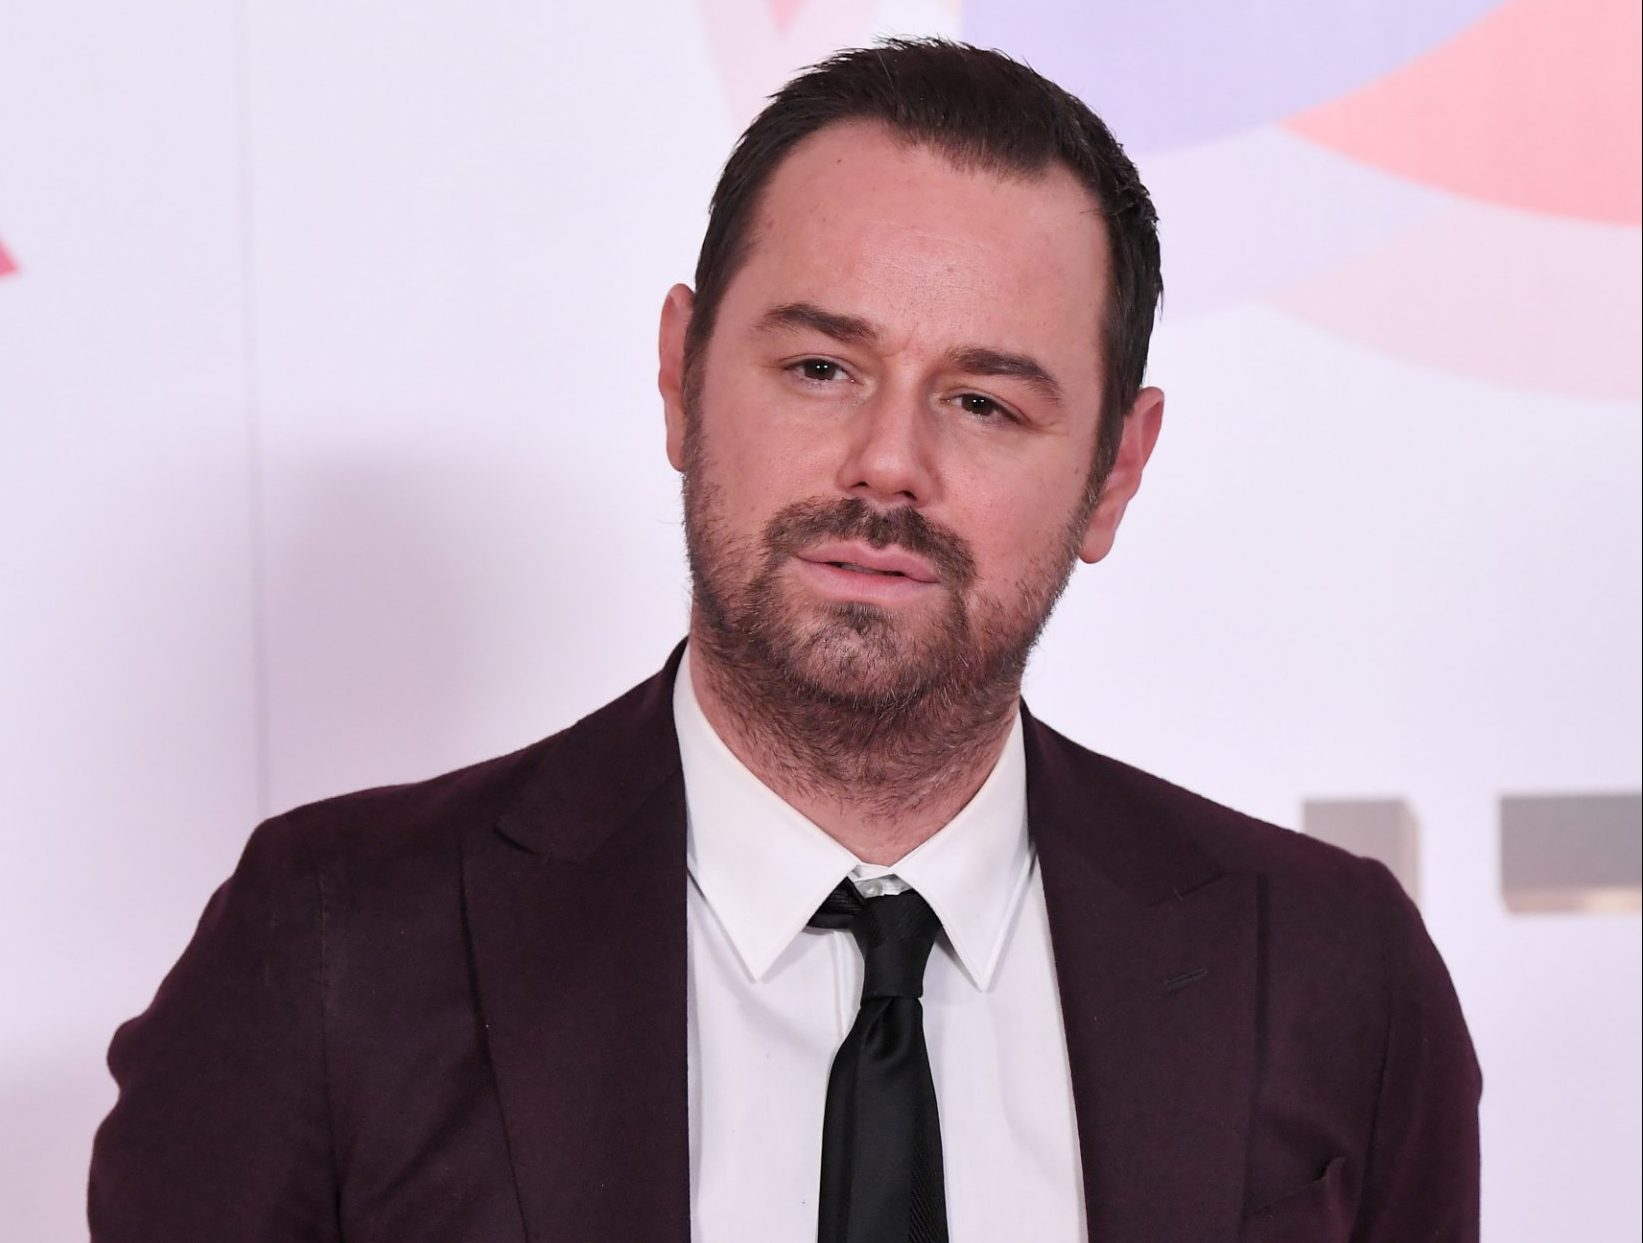 Mandatory Credit: Photo by Anthony Harvey/REX/Shutterstock (10069672cc) Danny Dyer - Serial Drama Performance - 'EastEnders' 23rd National Television Awards, Press Room, O2, London, UK - 22 Jan 2019